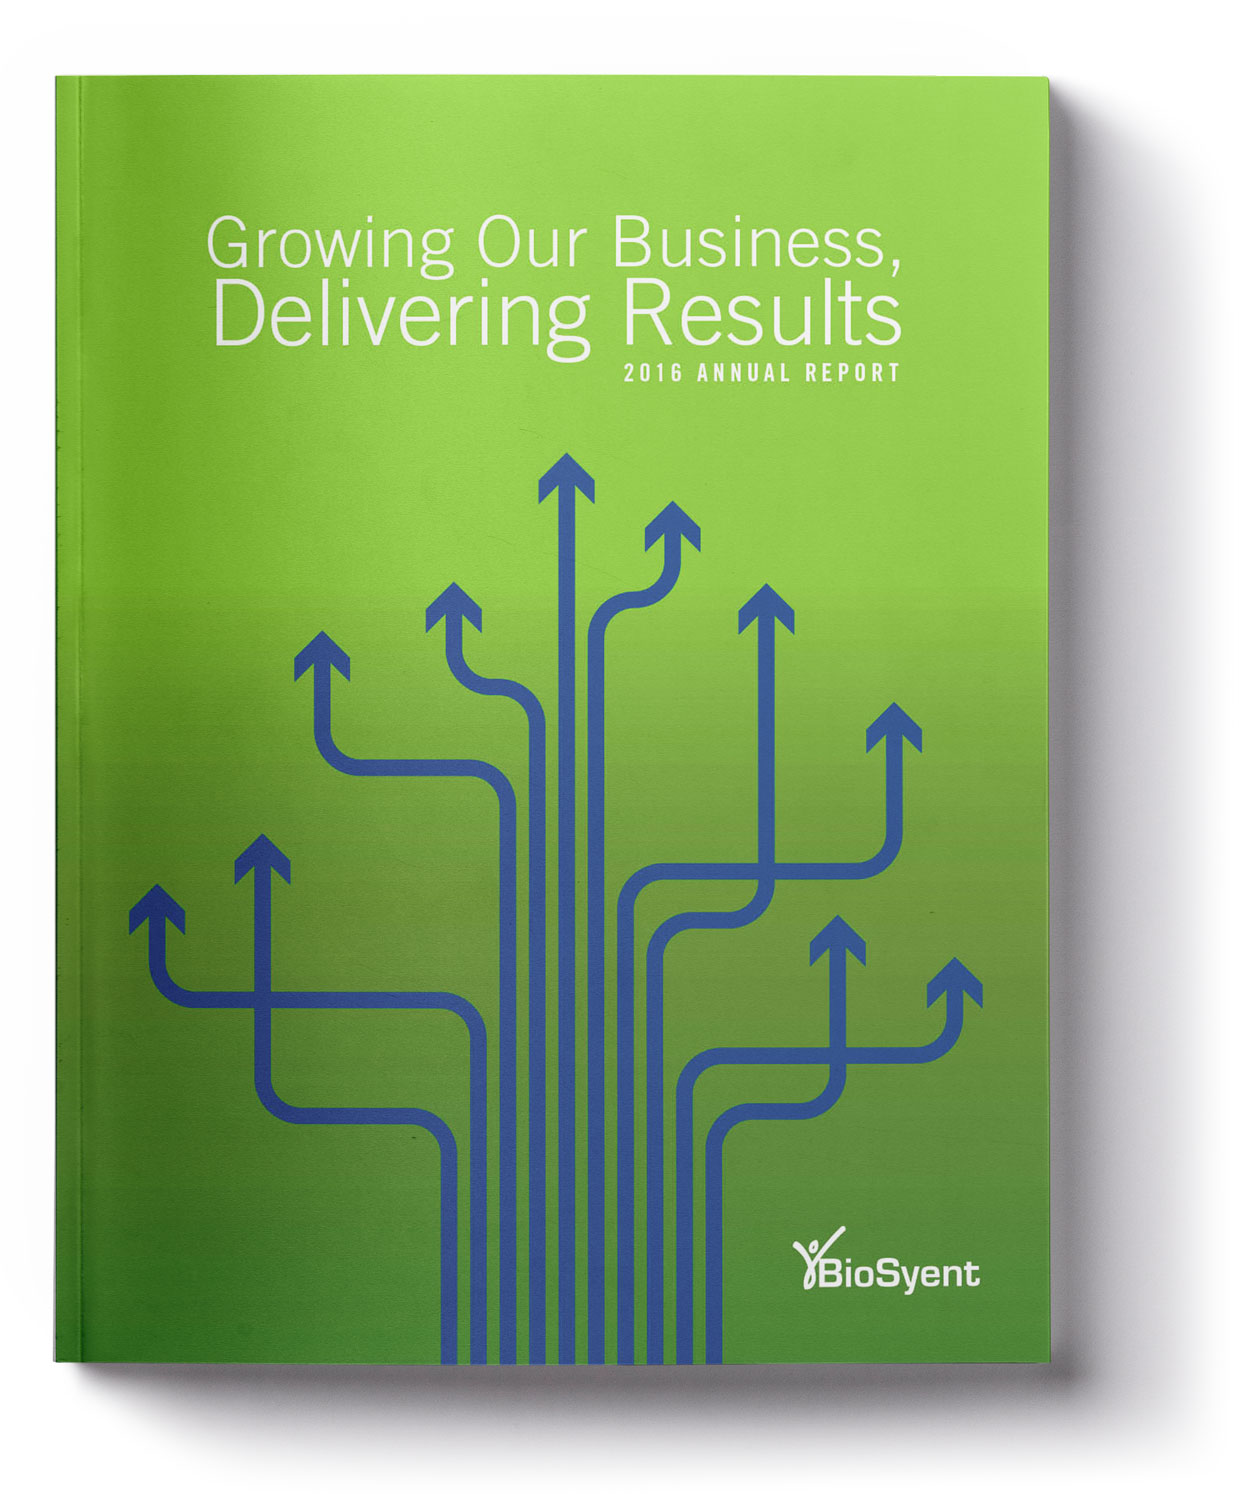 Annual Report for BioSyent Inc 2016